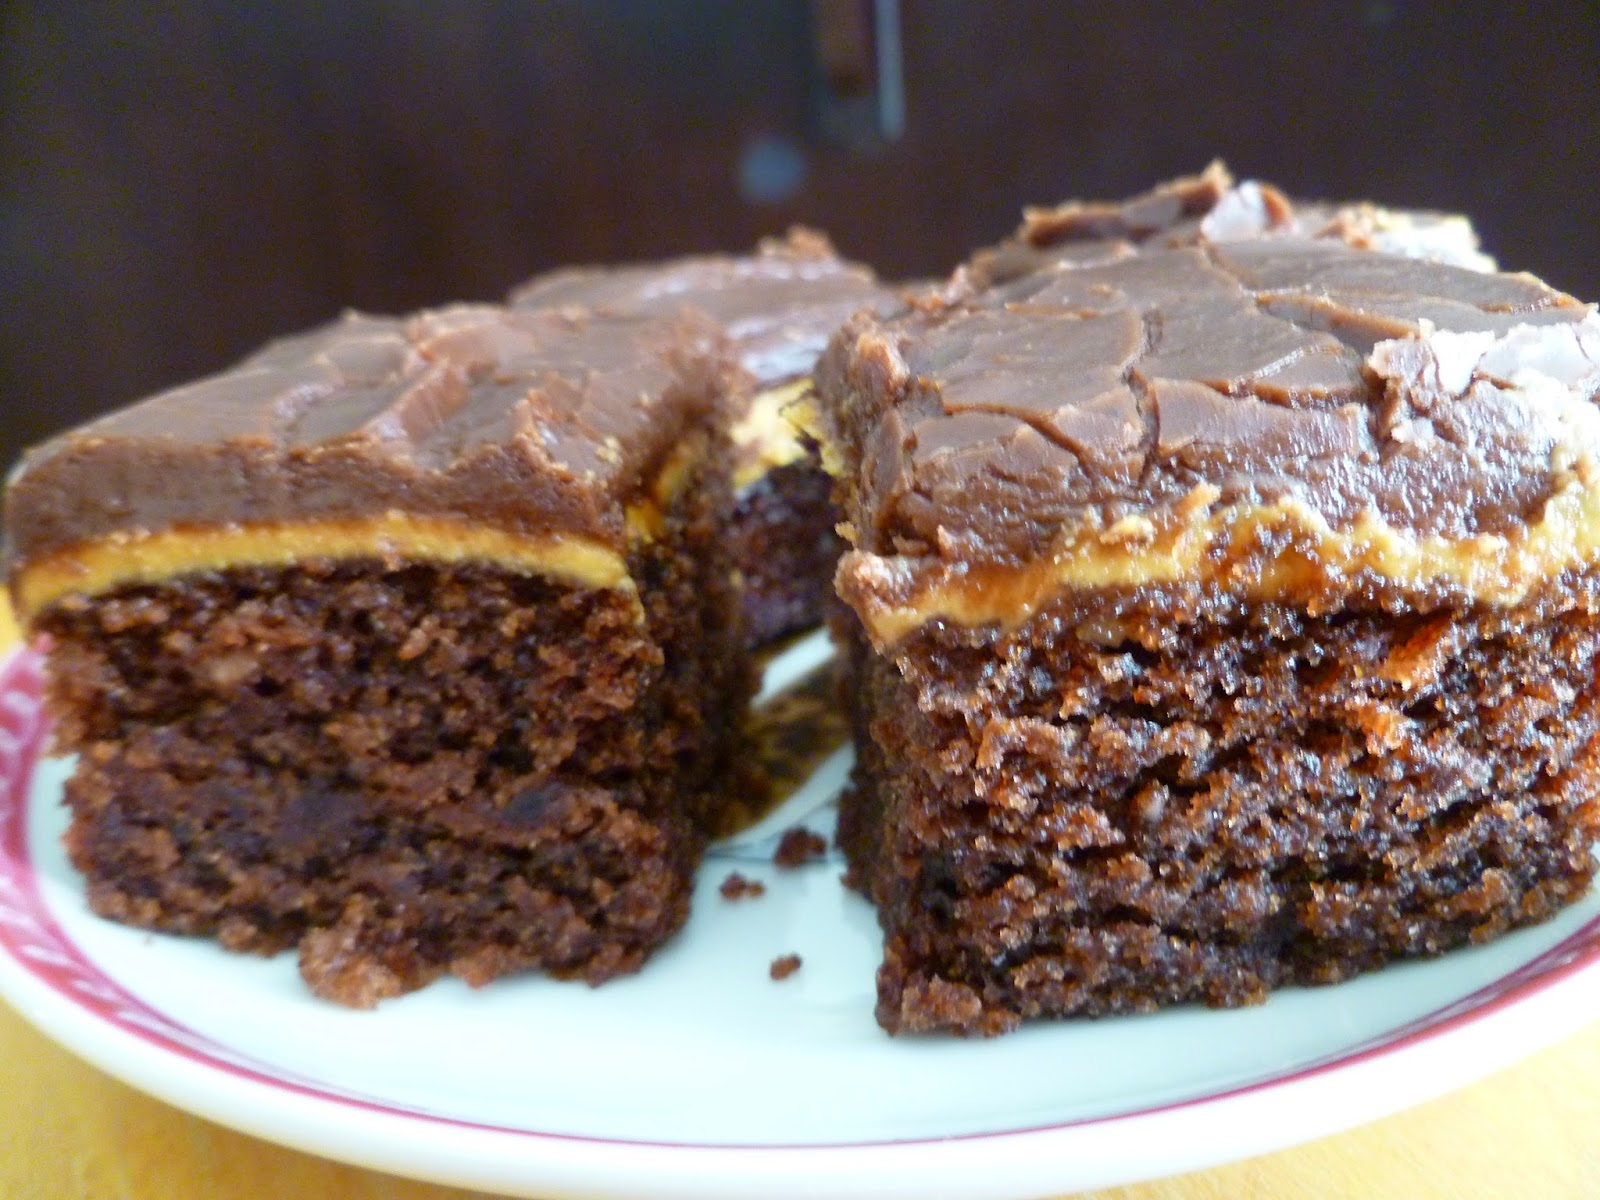 The Pastry Chef's Baking: Peanut Butter Fudge Cake